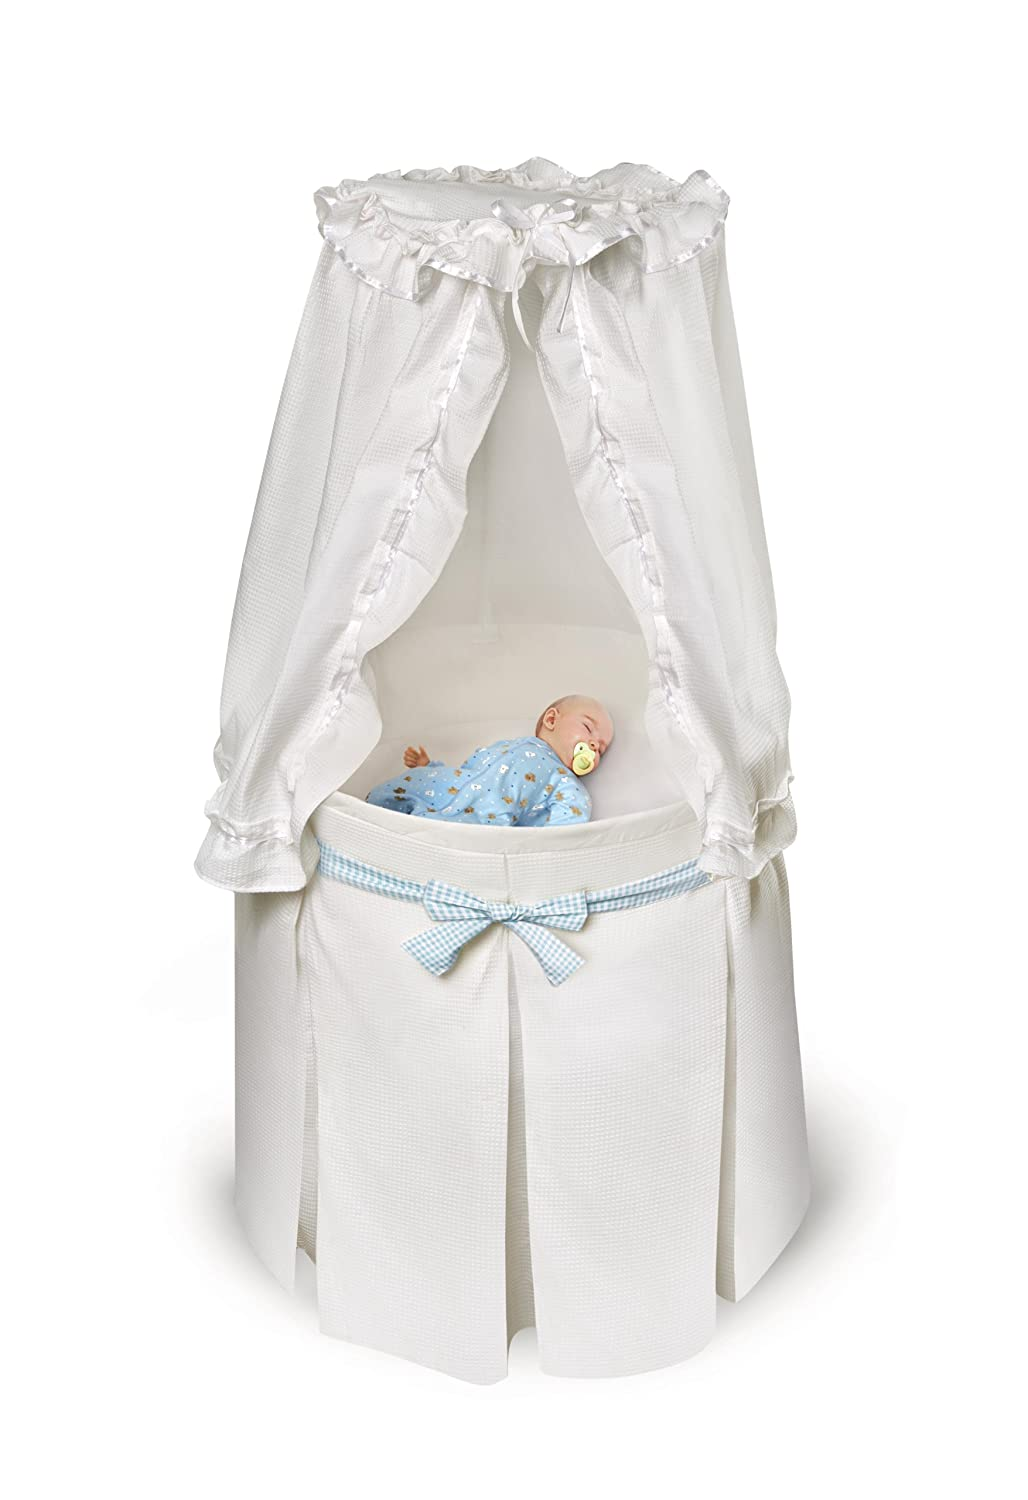 Pad and Storage Empress Round Baby Bassinet with Bedding